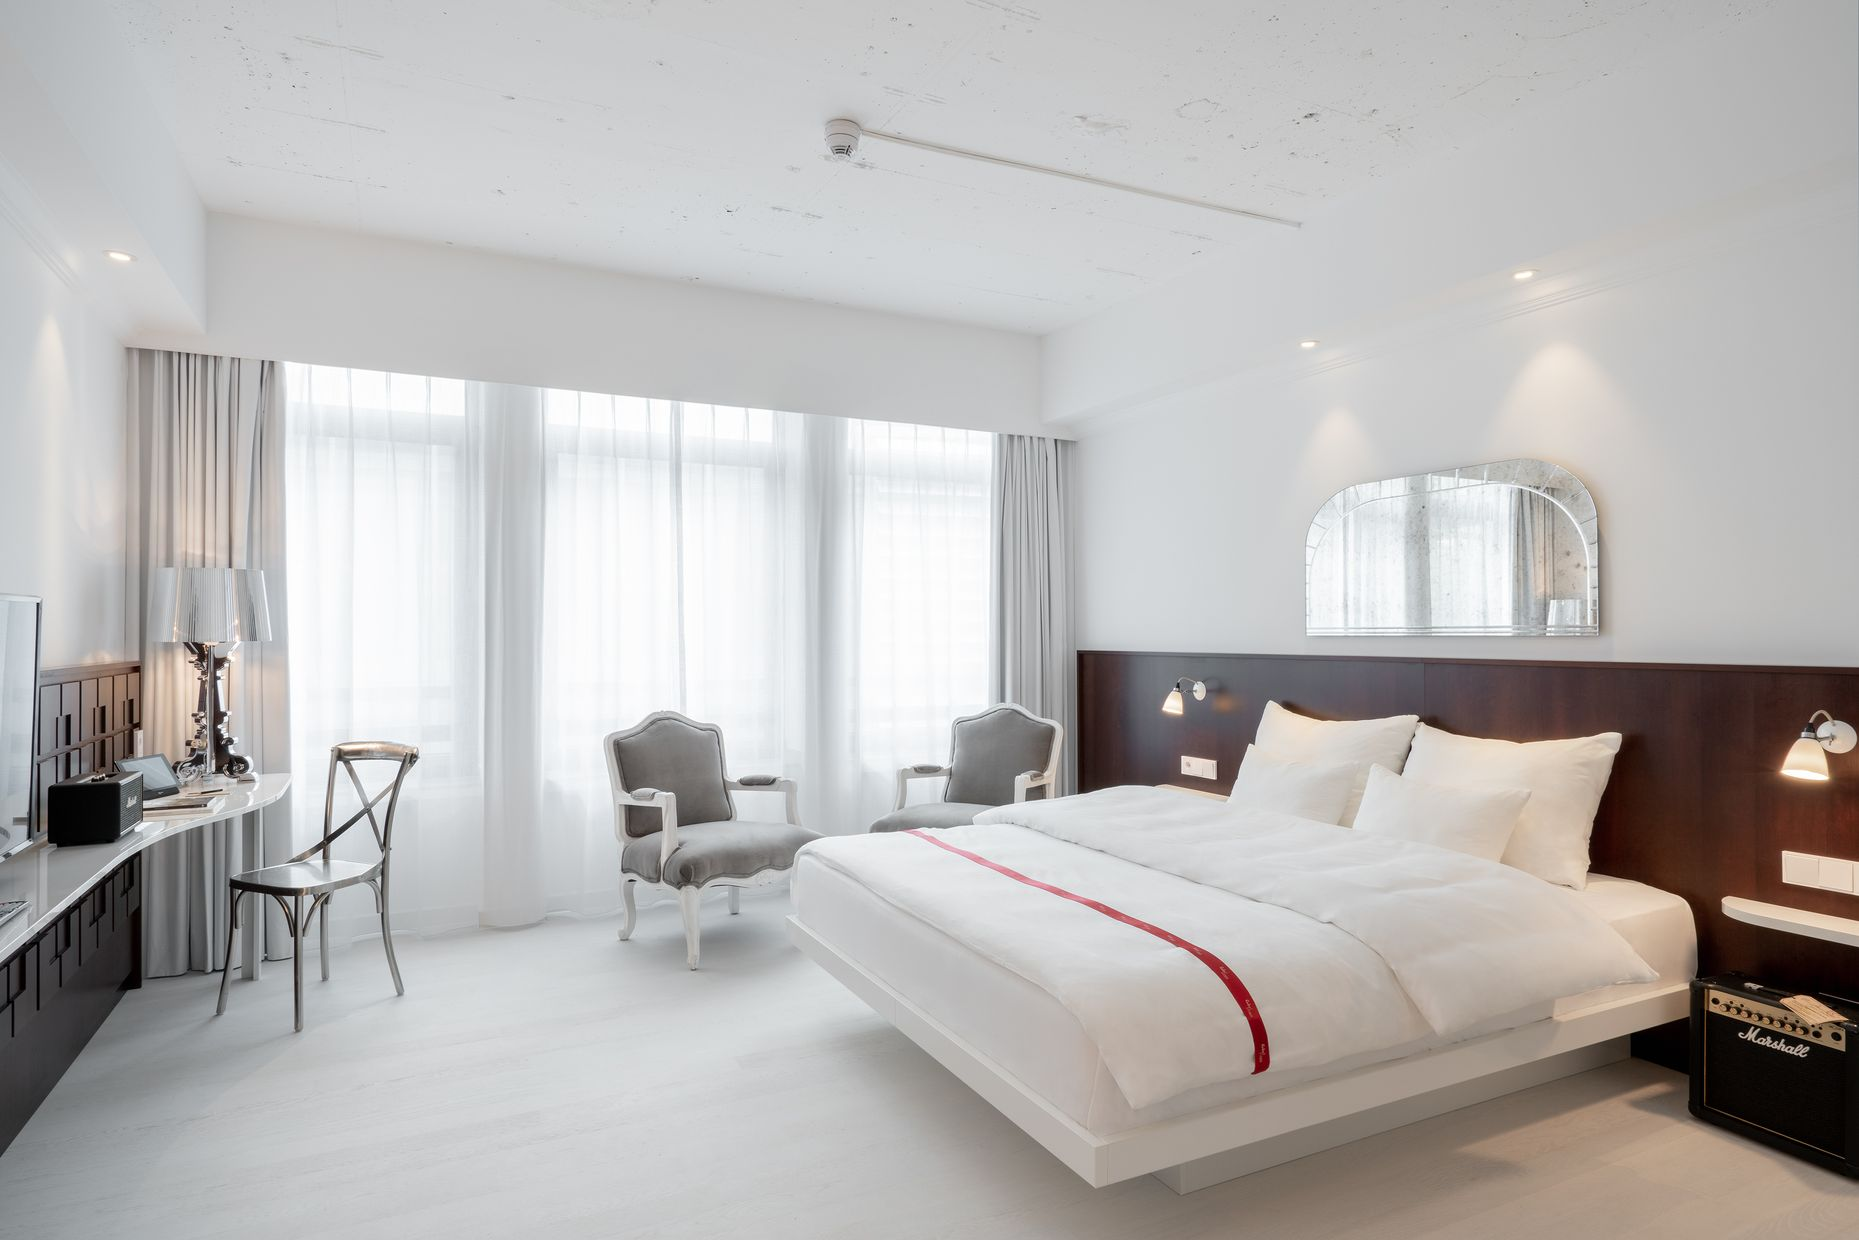 Zimmeransicht des Ruby Coco Hotels Lean Luxury